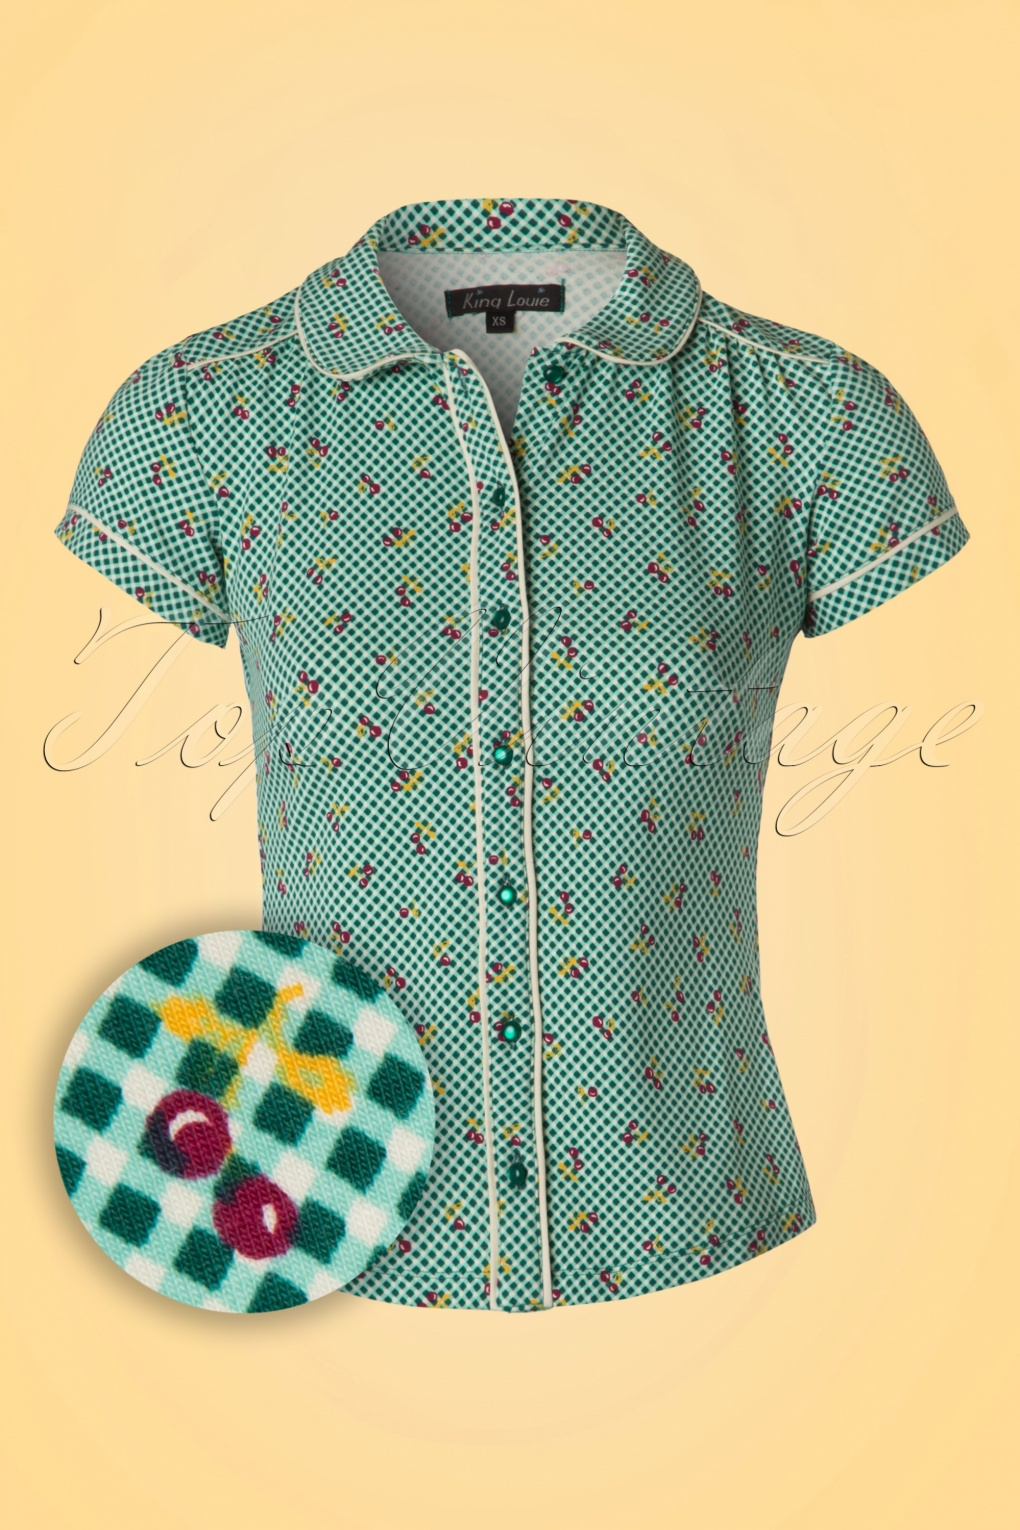 1930s Style Tops, Blouses & Sweaters Blush Blouse in Para Green £52.08 AT vintagedancer.com